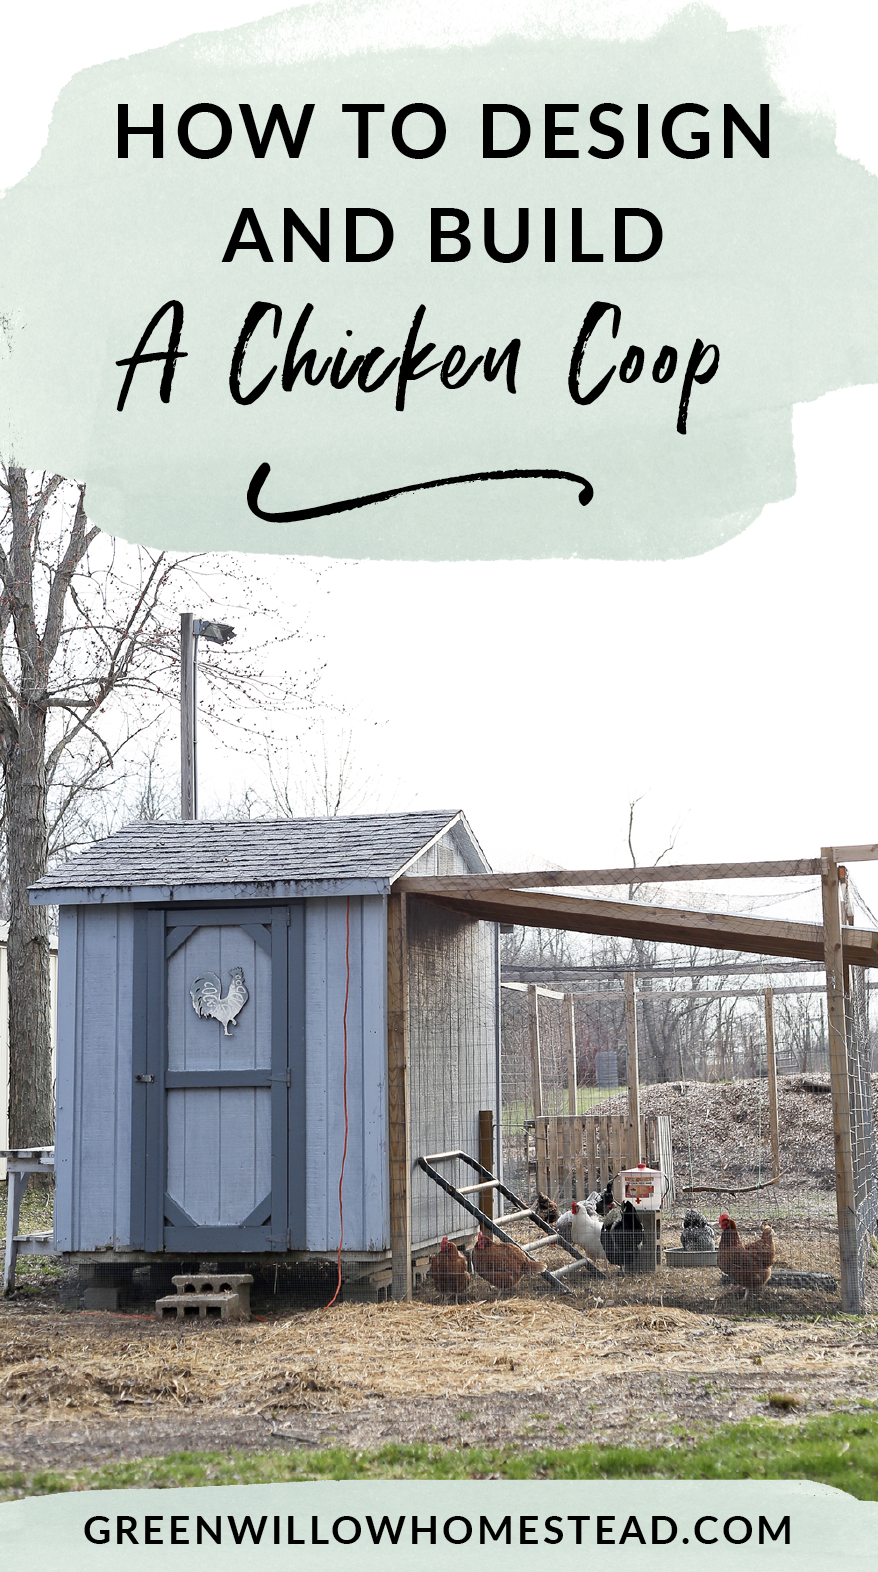 How to design and build a chicken coop for your backyard hens